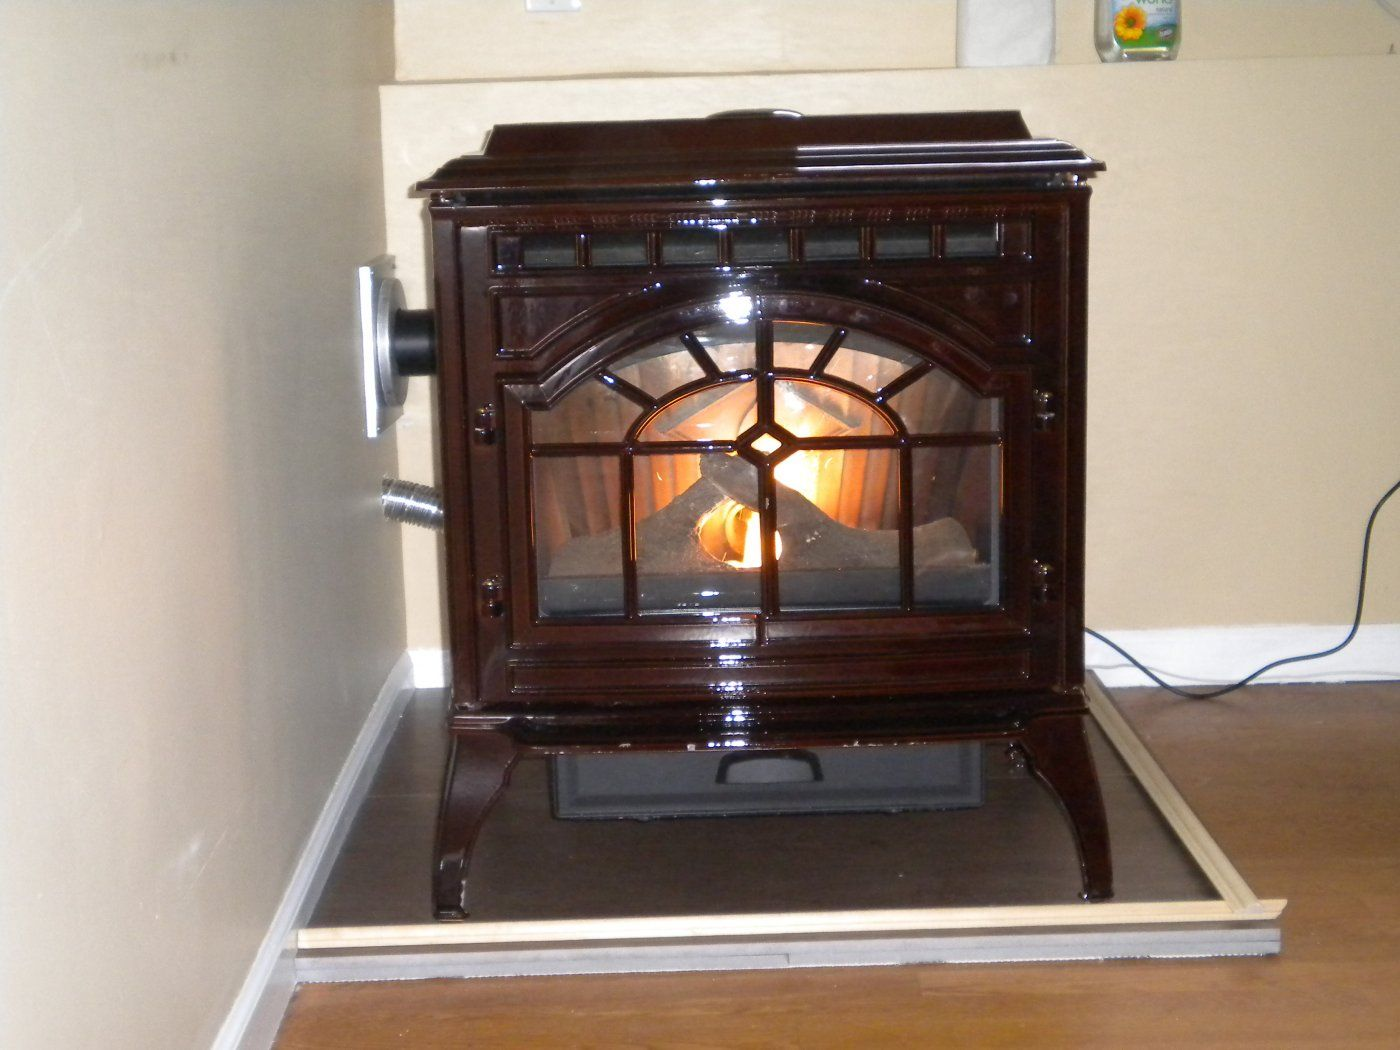 just got the new stove installed quad mt vernon and have some